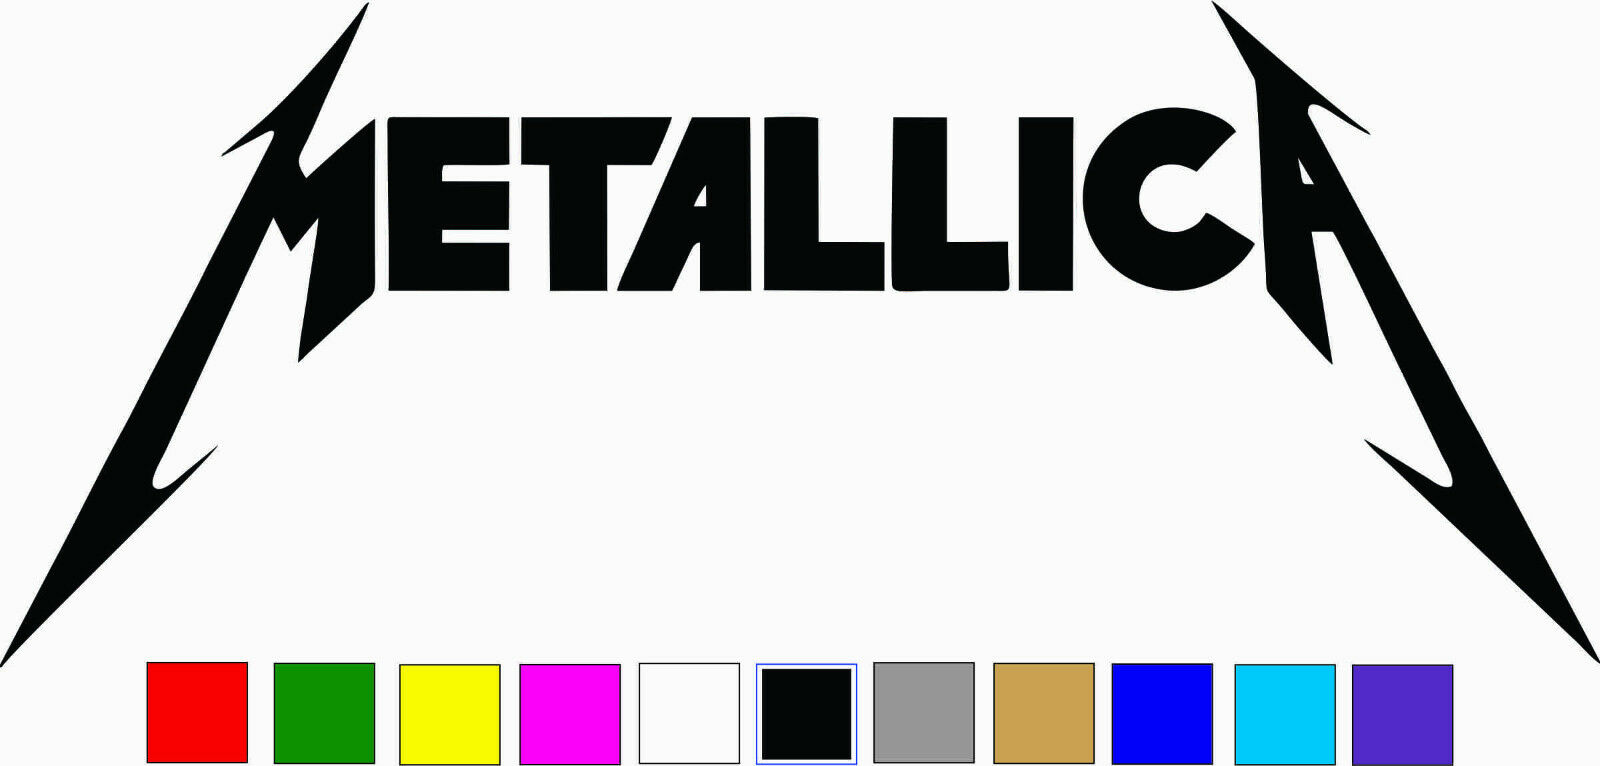 Home Decoration - METALLICA Logo Vinyl Decal Sticker Die Cut Rock Band